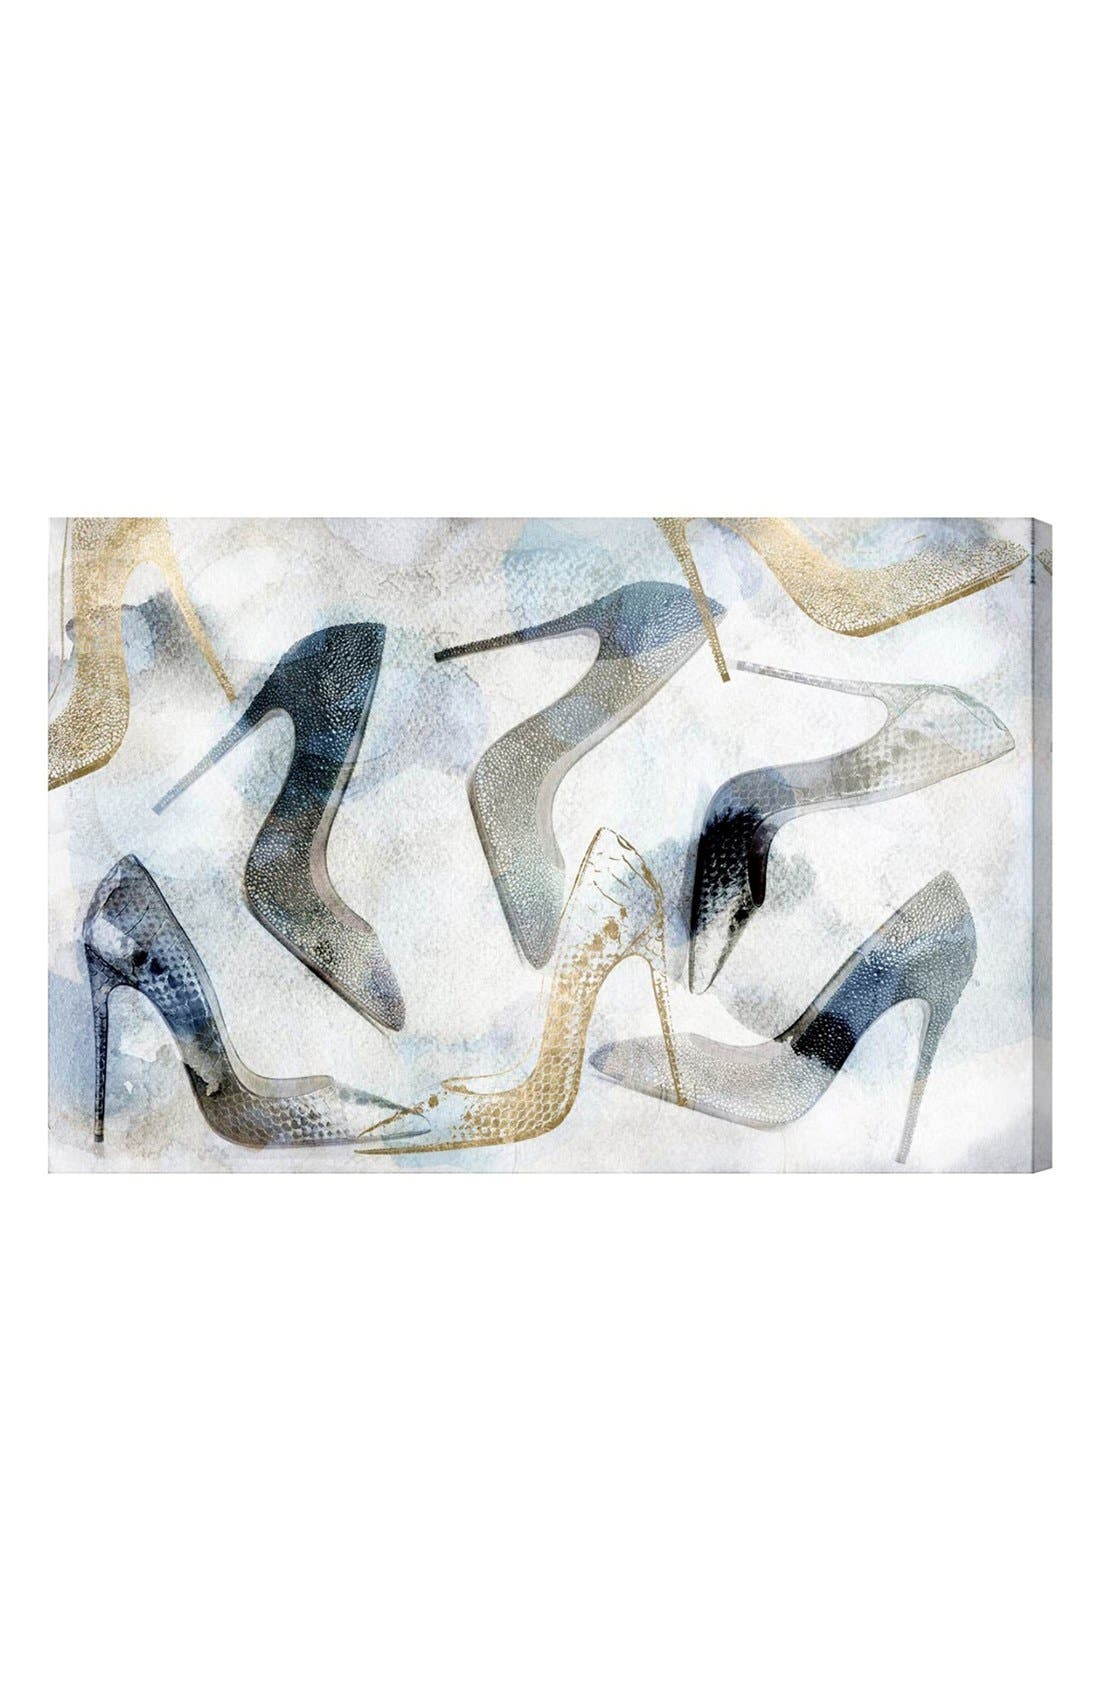 Alternate Image 1 Selected - Oliver Gal 'Bianca' Canvas Wall Art